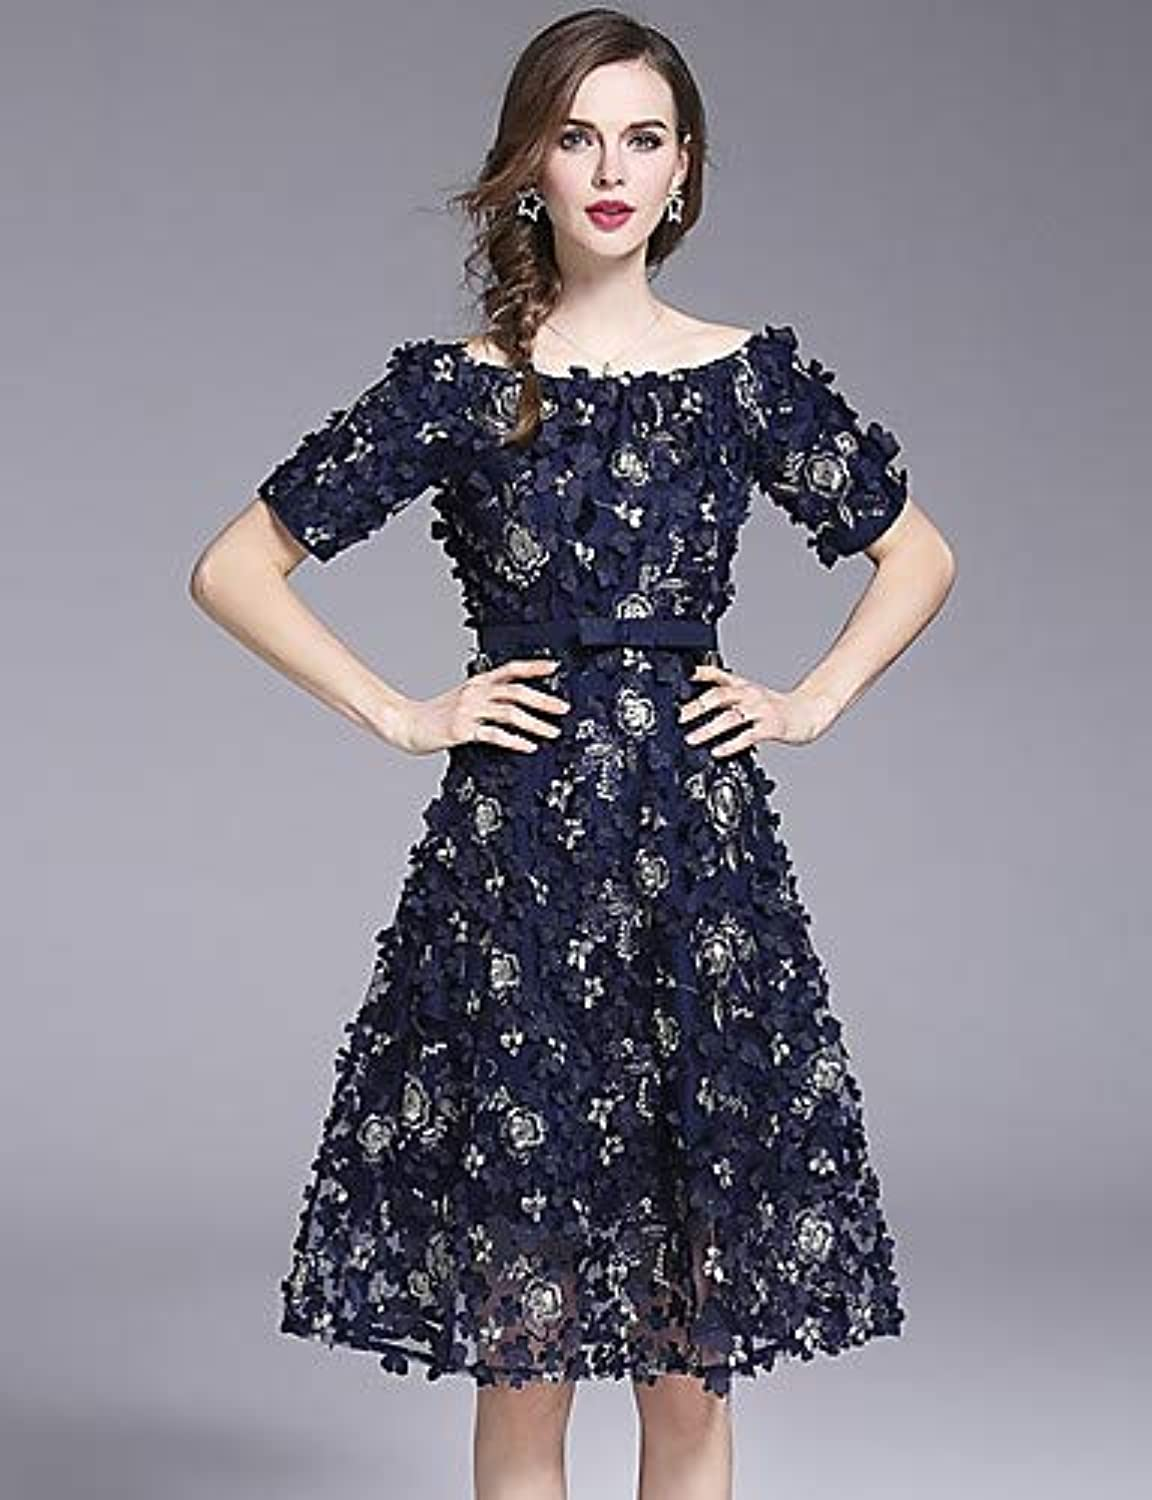 Women's Sophisticated Petal Sleeves Slim A Line Dress  Animal Butterfly, Lace Pleated   Embroidered Boat Neck Spring   Summer Print